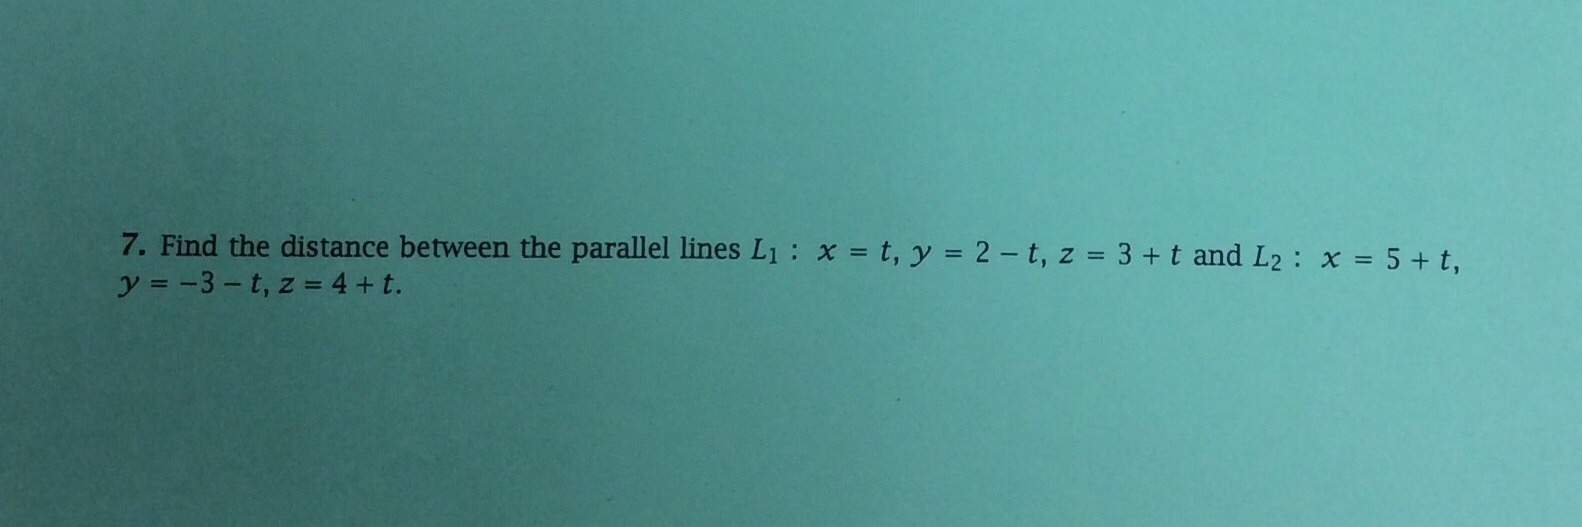 how to find the distance between 2 parallel planes